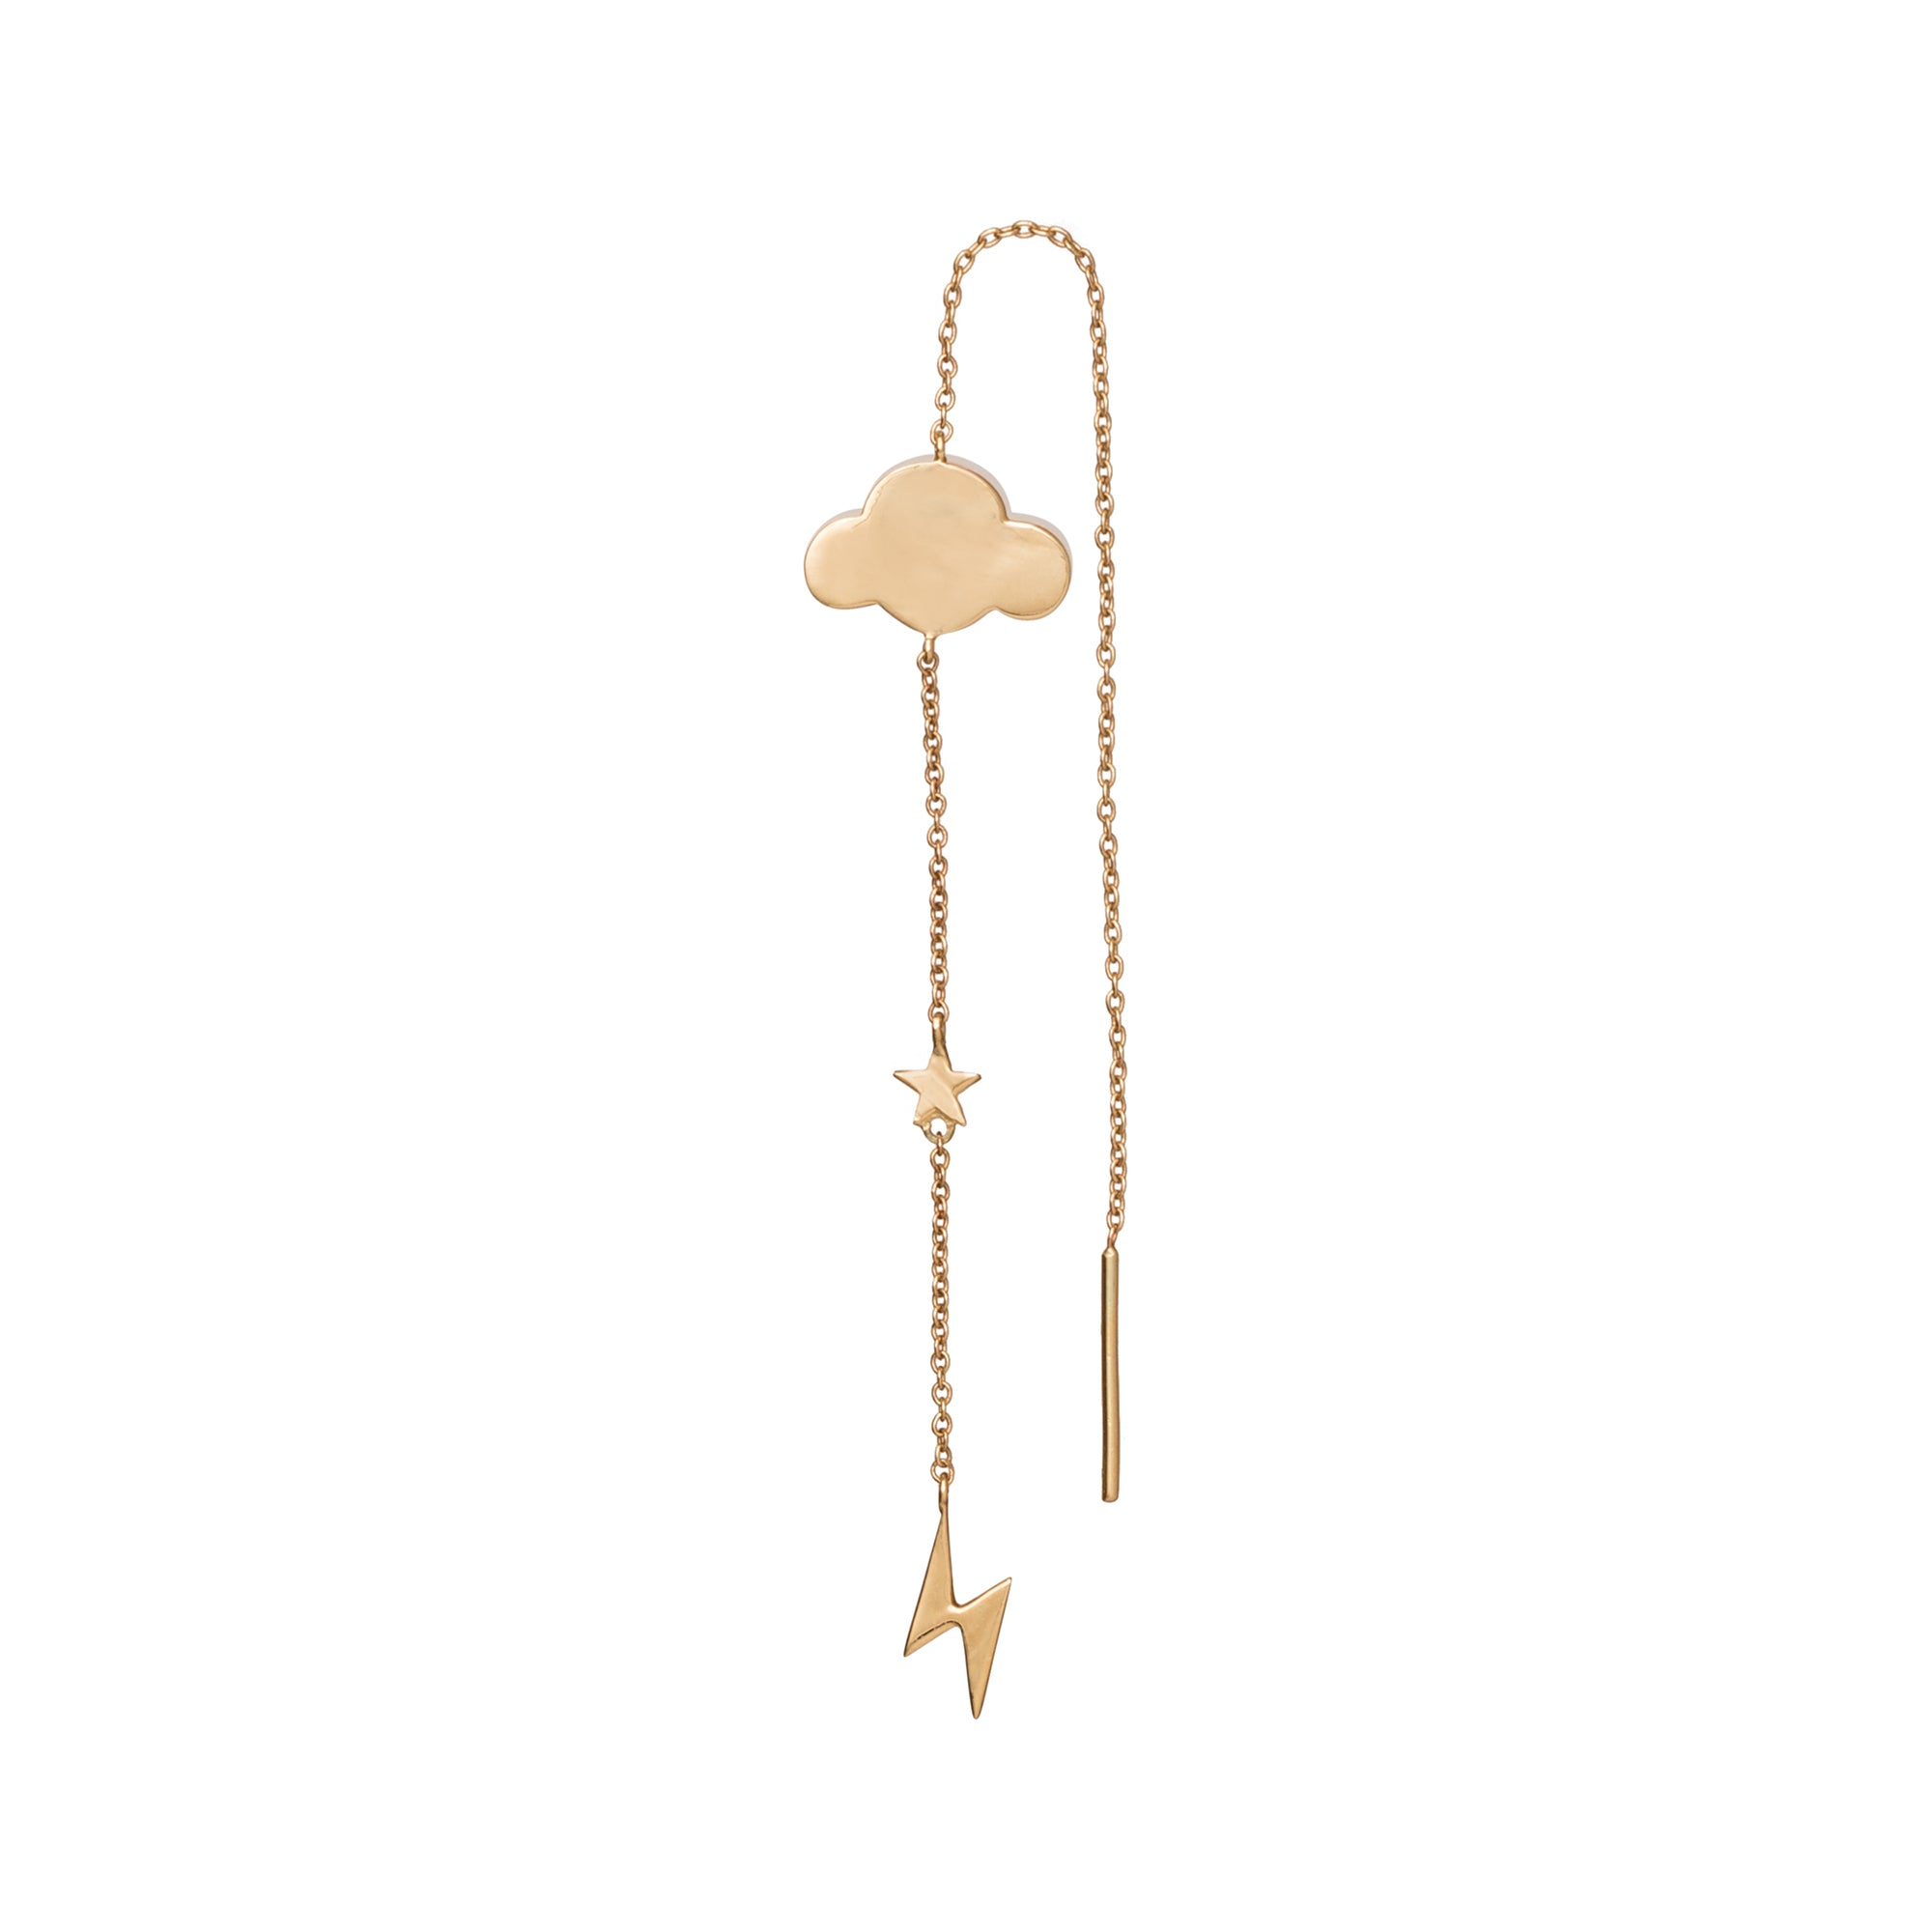 Storm Cloud Pull Through Earring by Suel for Broken English Jewelry